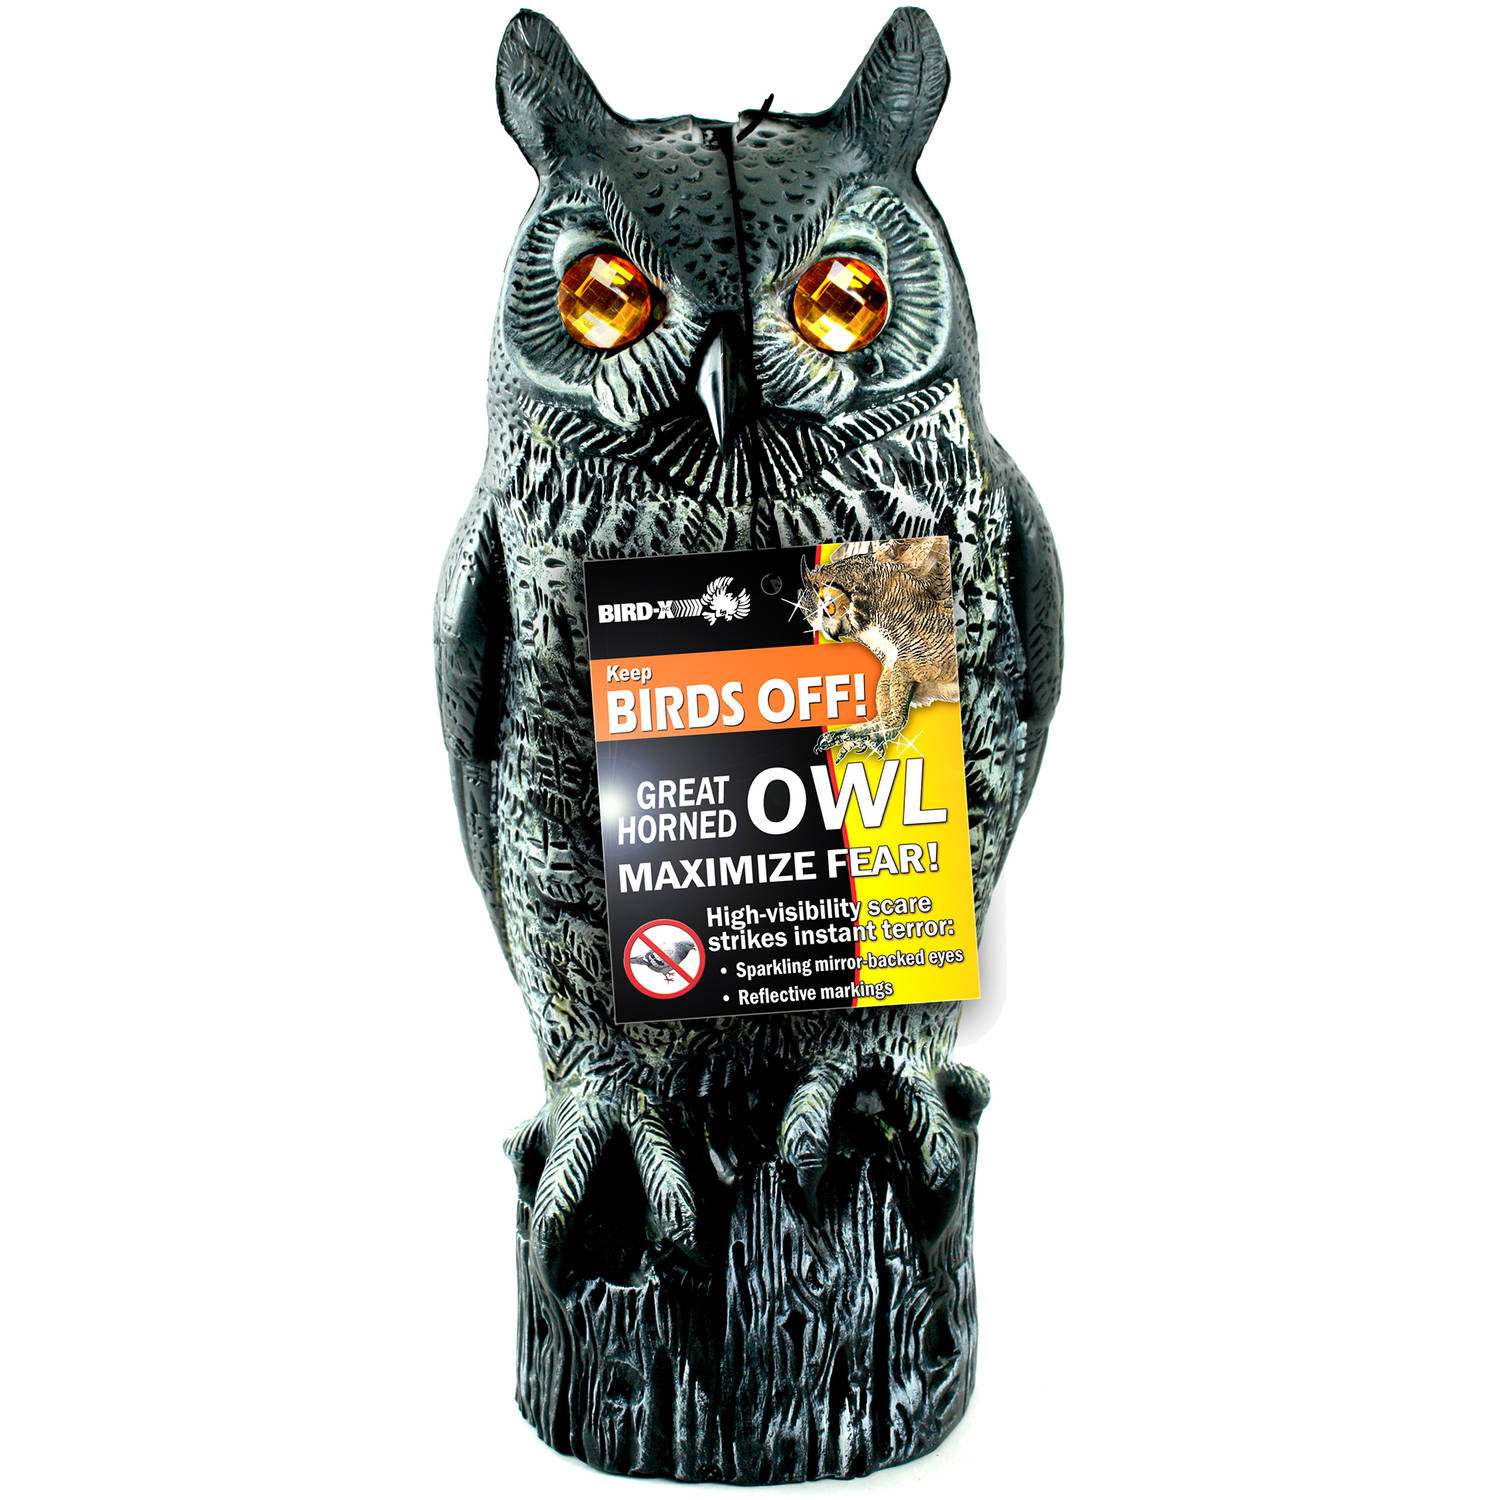 Bird-X Great Horned Owl Decoy with Reflective Eyes